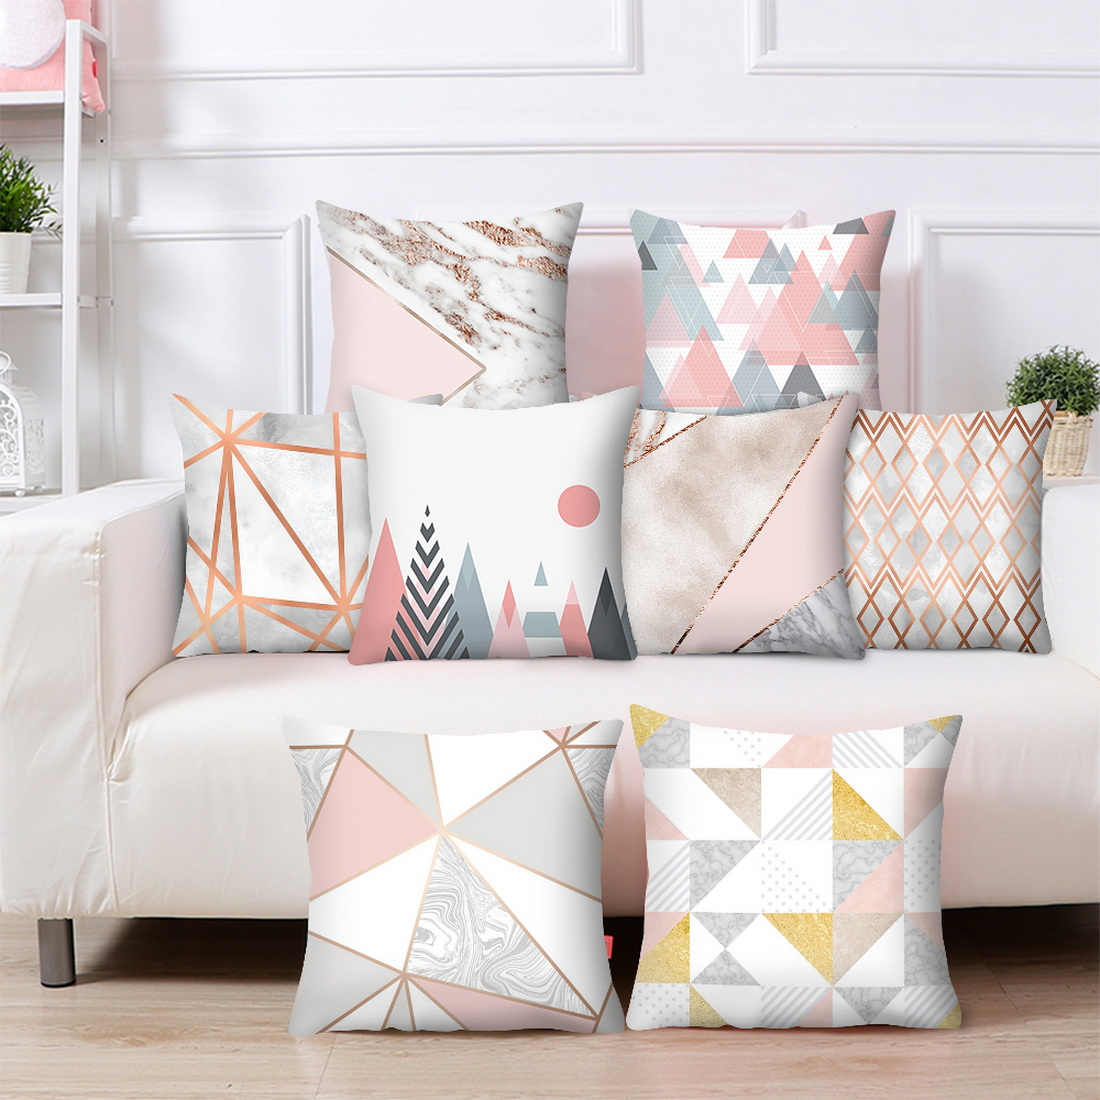 Marvelous Details About Modern Rose Gold Cushion Cover Geometric Pillowcase Sofa Bed Decor Pink Grey Caraccident5 Cool Chair Designs And Ideas Caraccident5Info